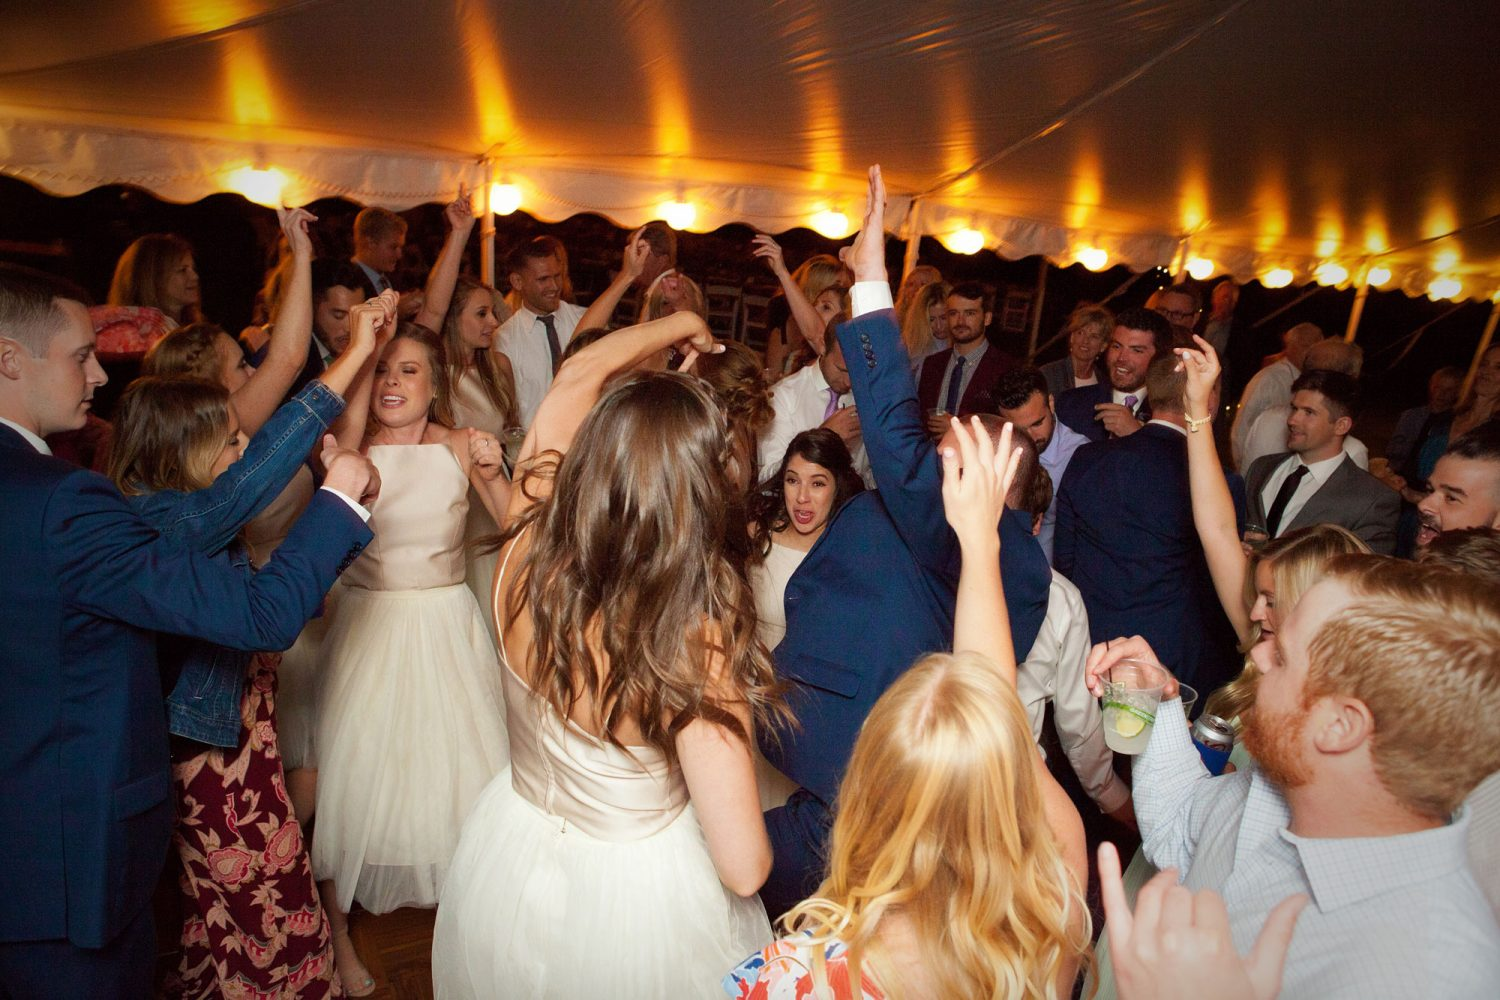 Dancing under the tent at a wedding in the Animas Valley of Durango, Colorado